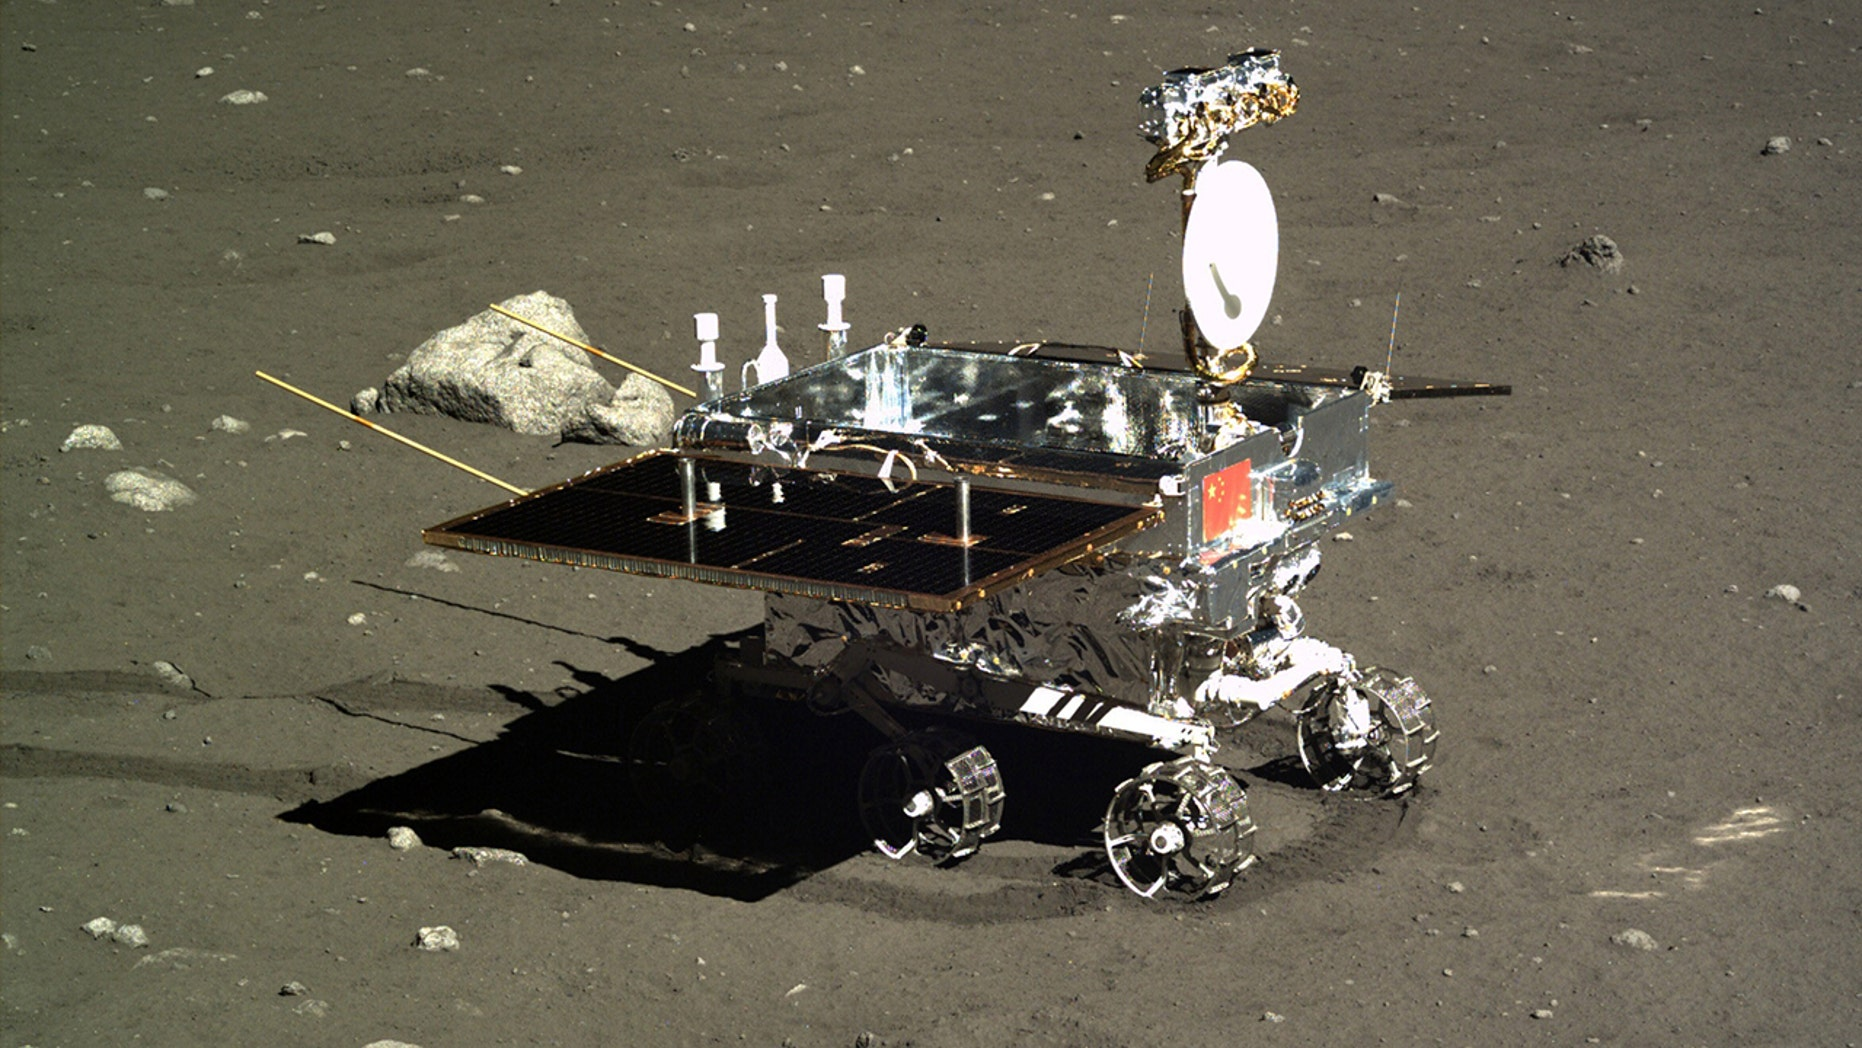 BEIJING, May 21, 2018 -- Photo taken by the landform camera on the Chang'e-3 moon lander on Dec. 16, 2013 shows the Yutu moon rover during Chang'e-3 lunar probe mission's first lunar day circle. (Xinhua via Getty Images)